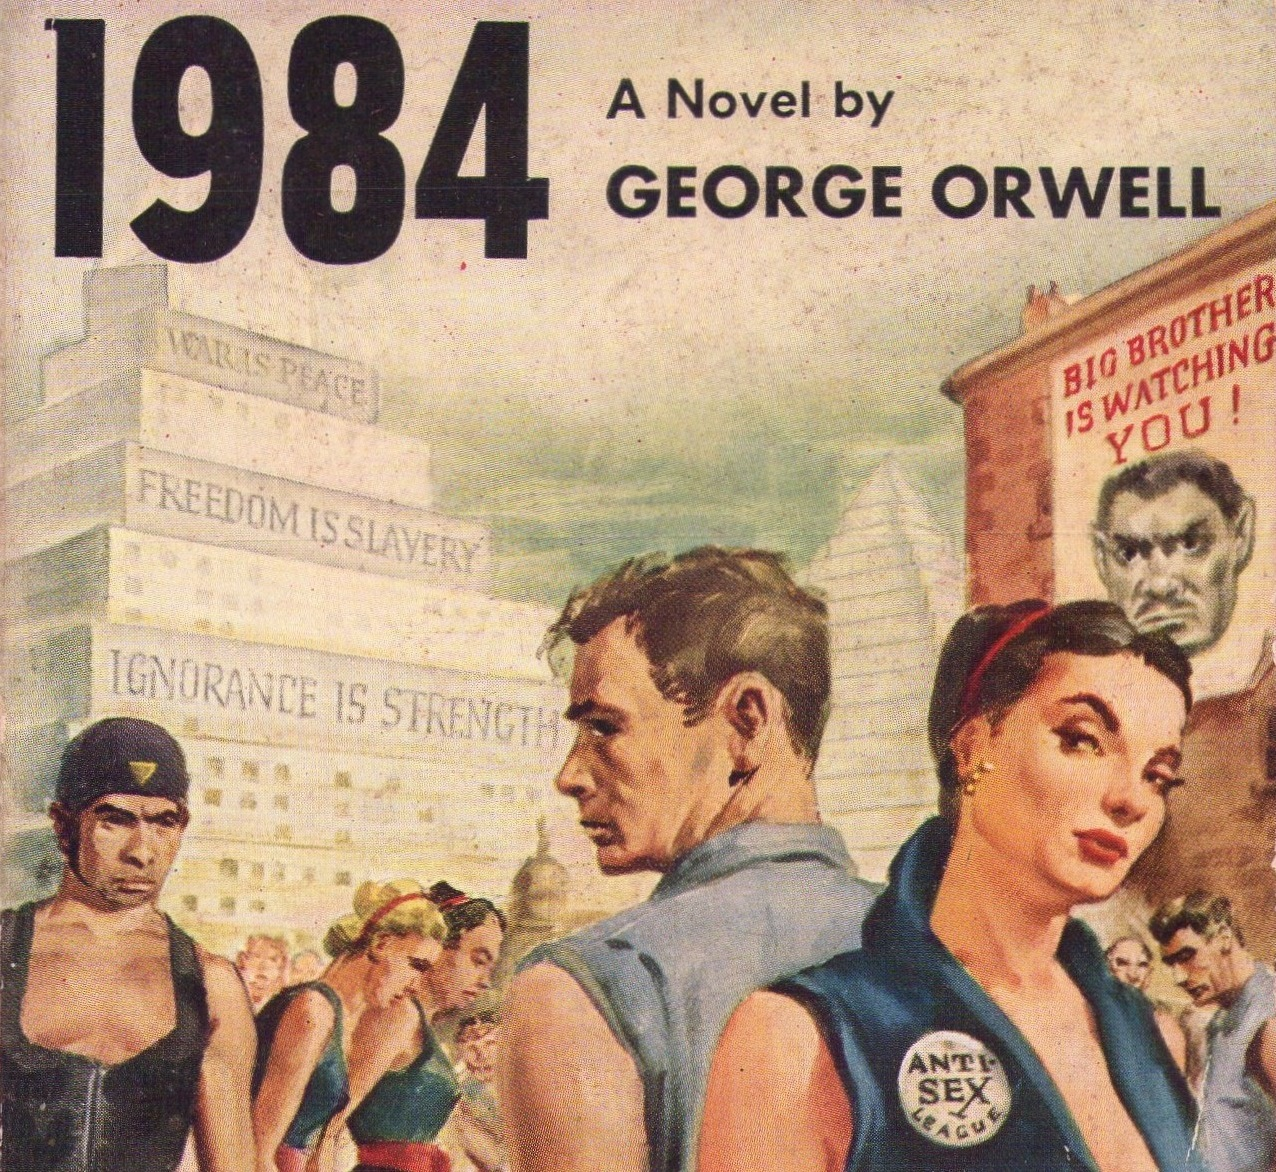 love george orwell s 1984 George orwell's dystopian novel 1984 has had doublegood sales after one of trump's advisers used the phrase alternative facts in an interview.